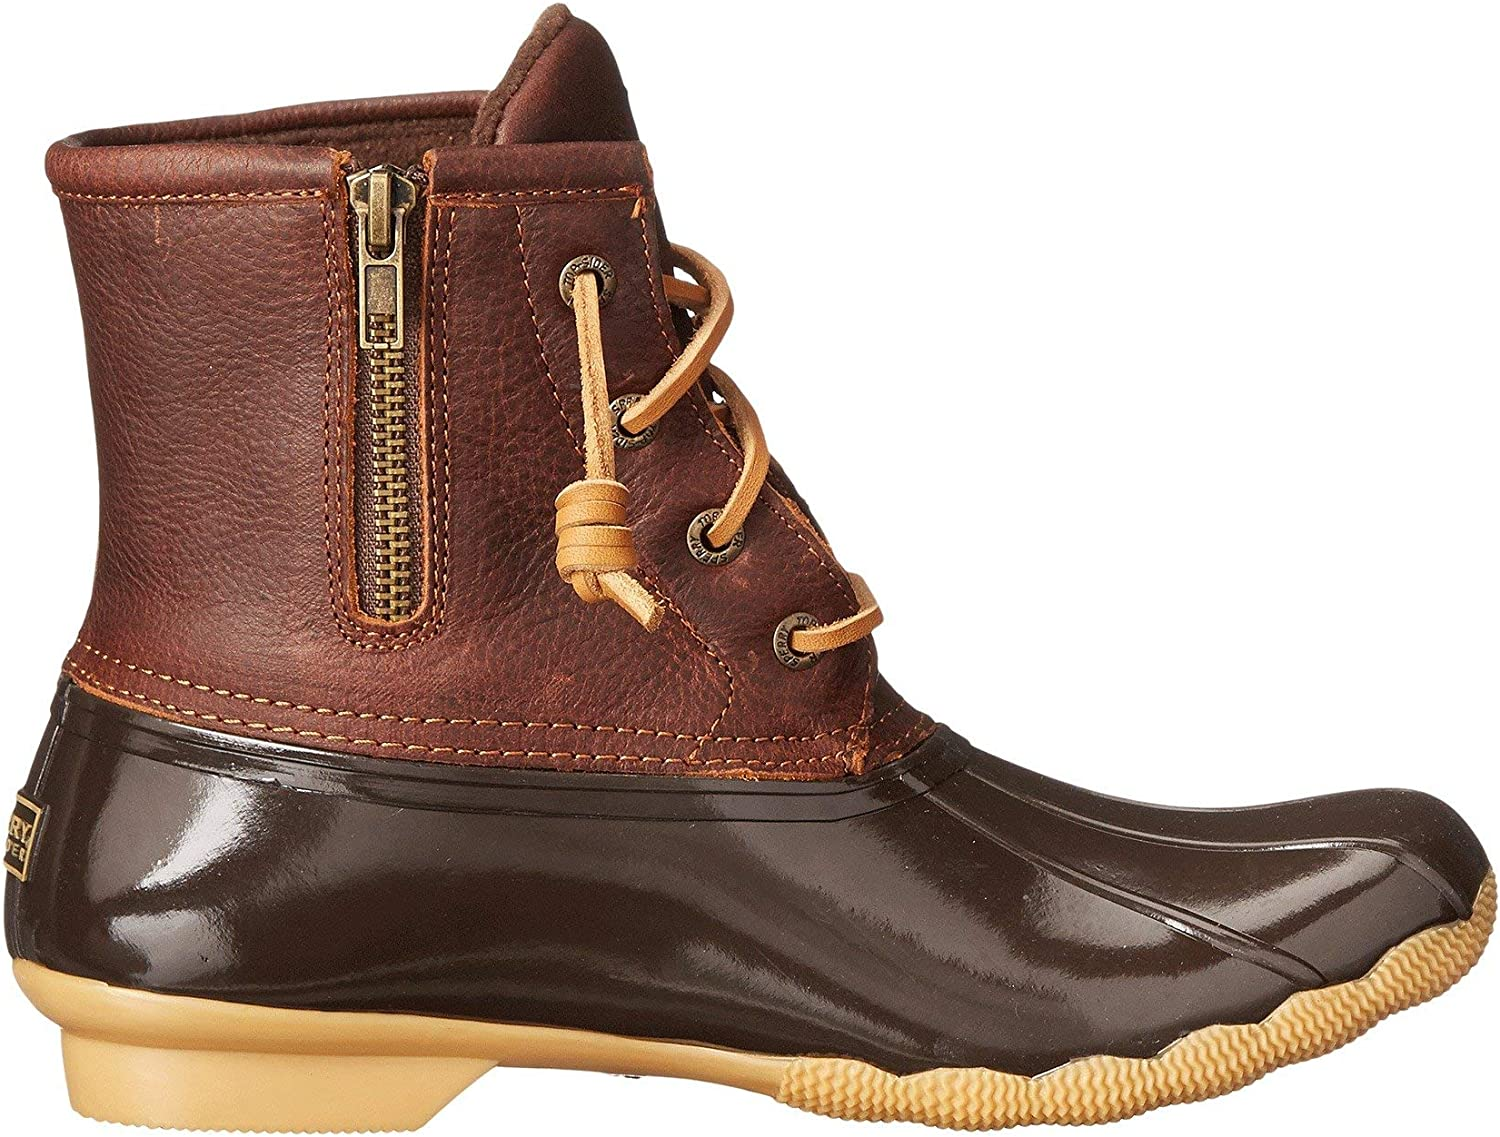 Sperry Top-Sider Saltwater Rope, Bottes de Pluie Femme Black Tan Dark Brown